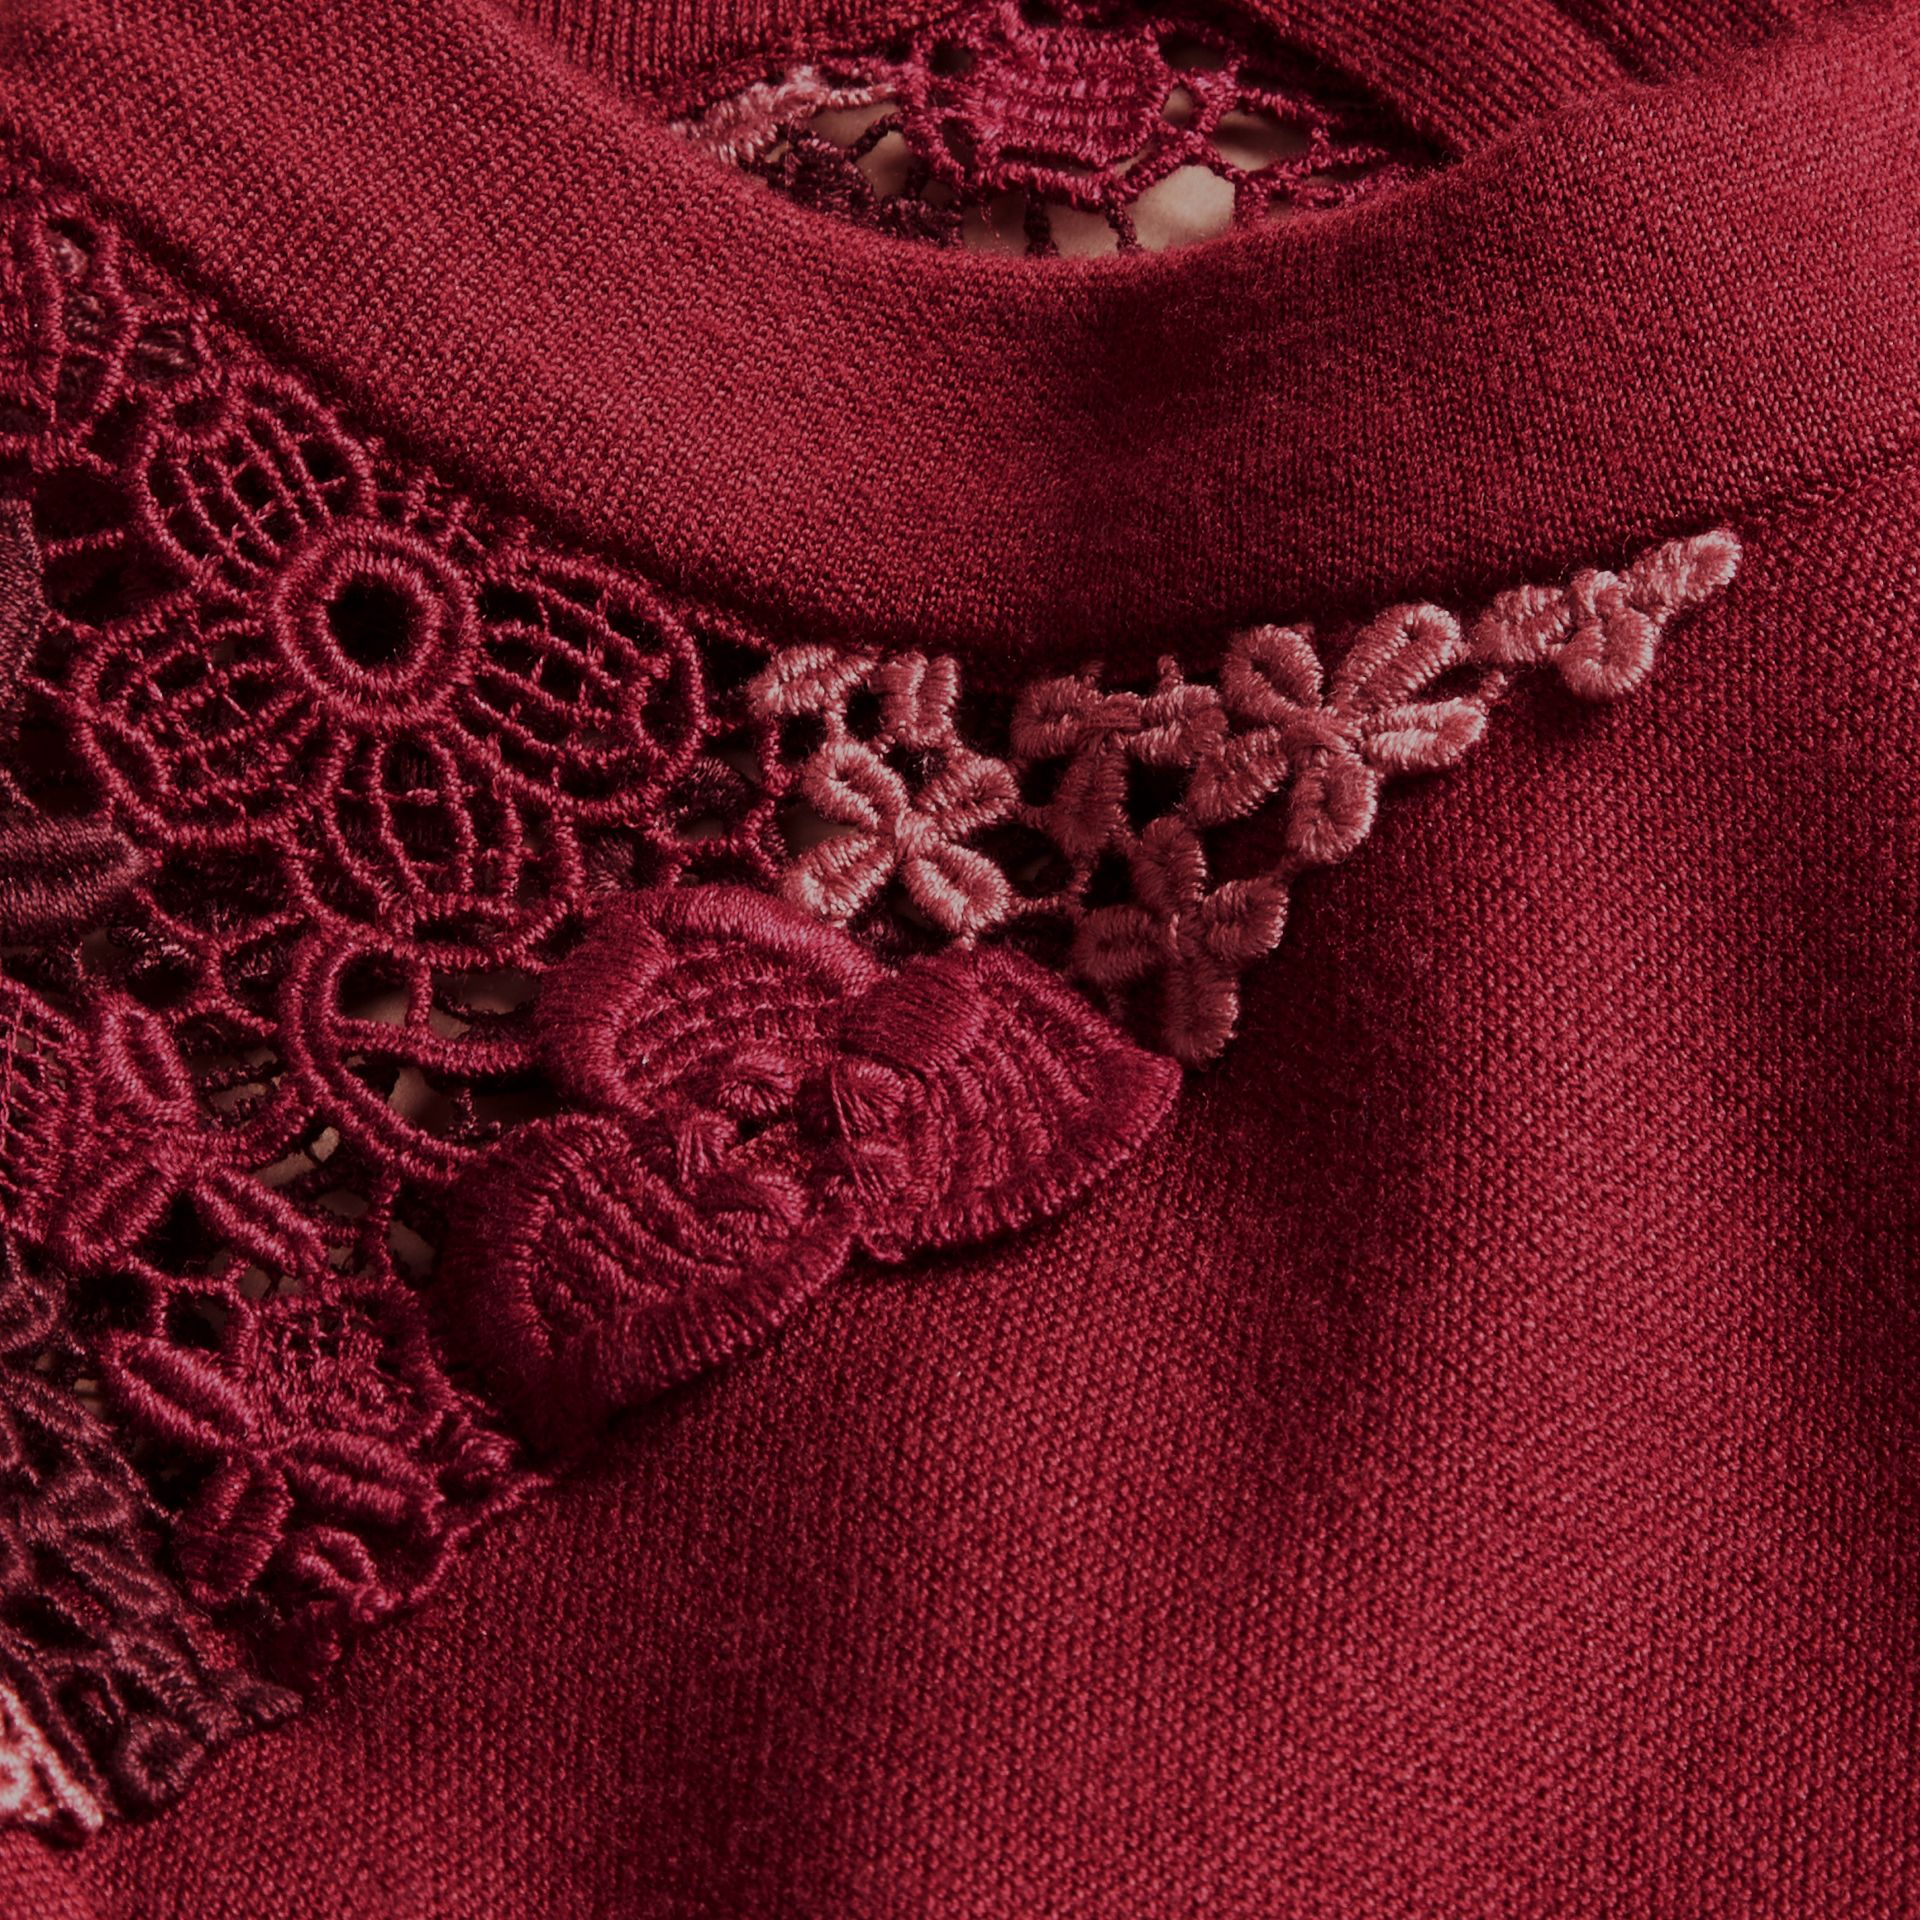 Carmine red Macramé Lace Detail Silk Blend Dress Carmine Red - gallery image 2